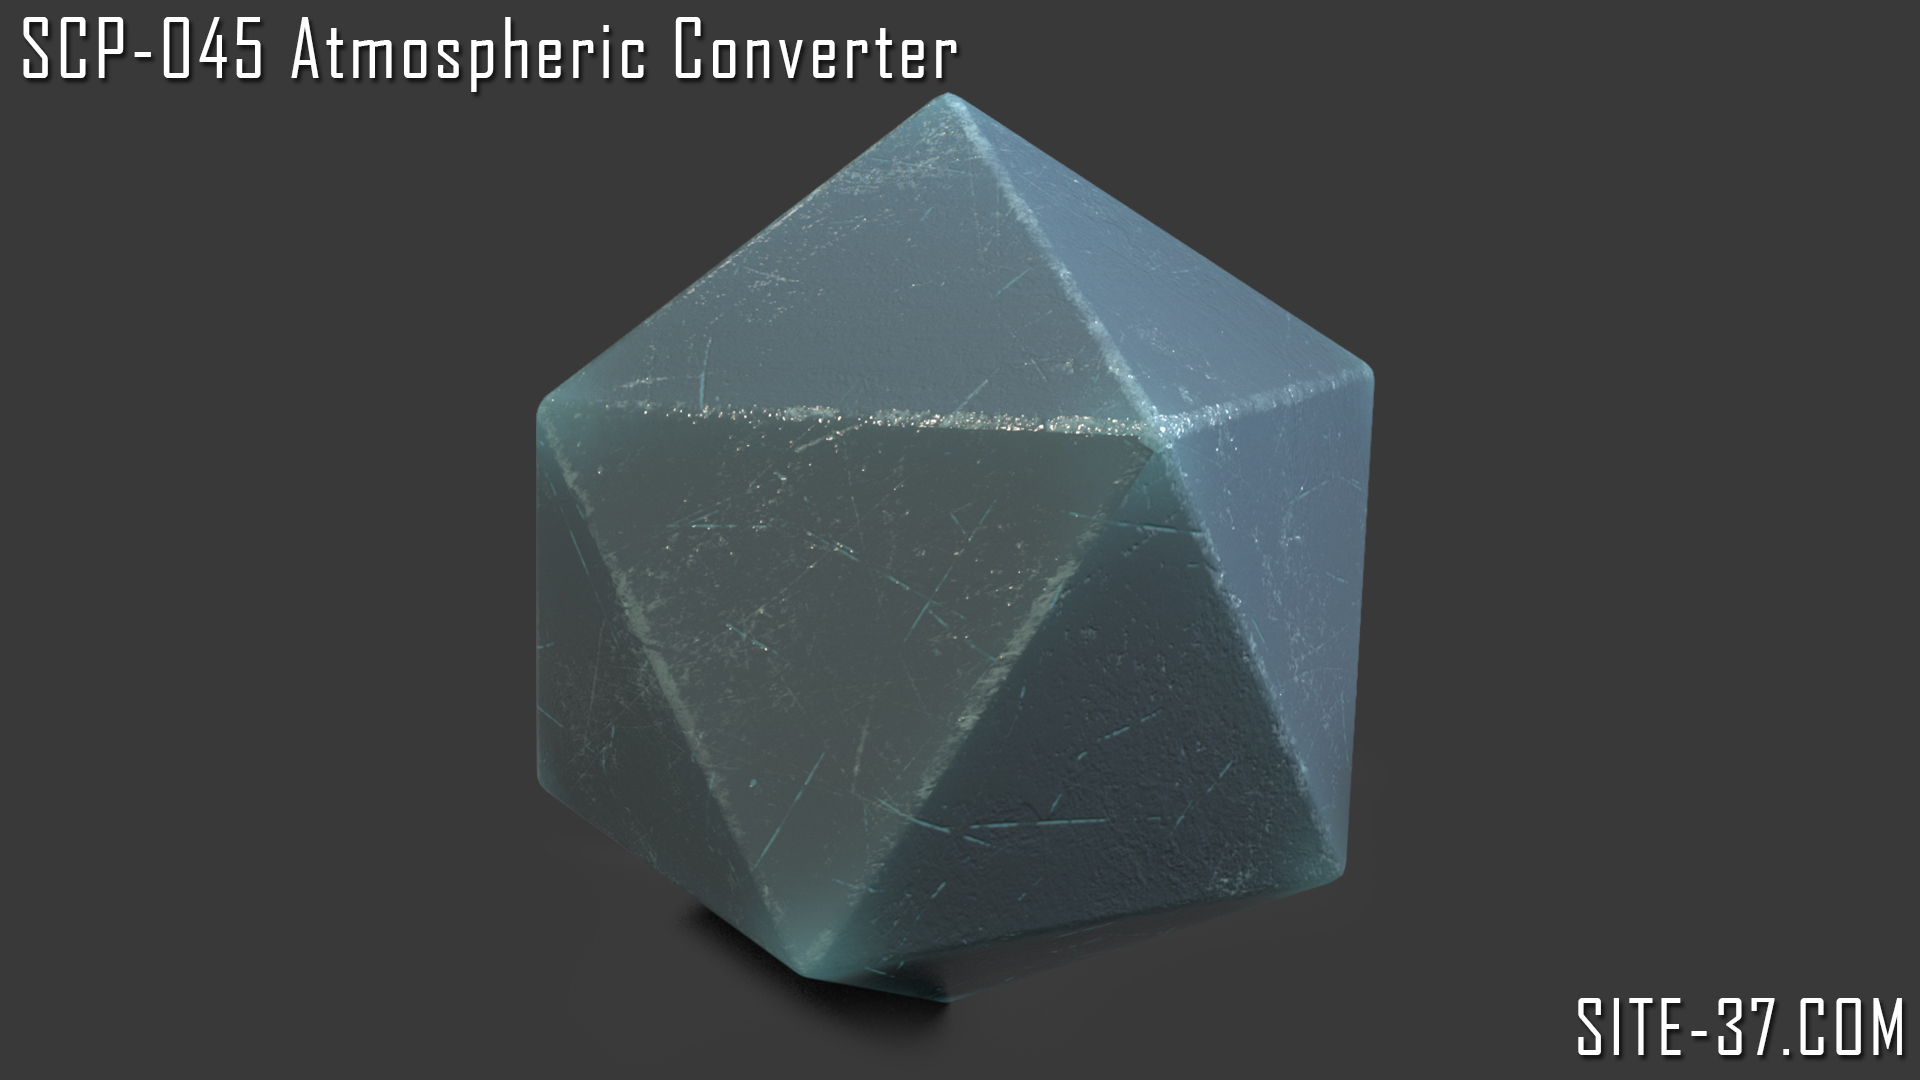 atmosphericConverter.jpg